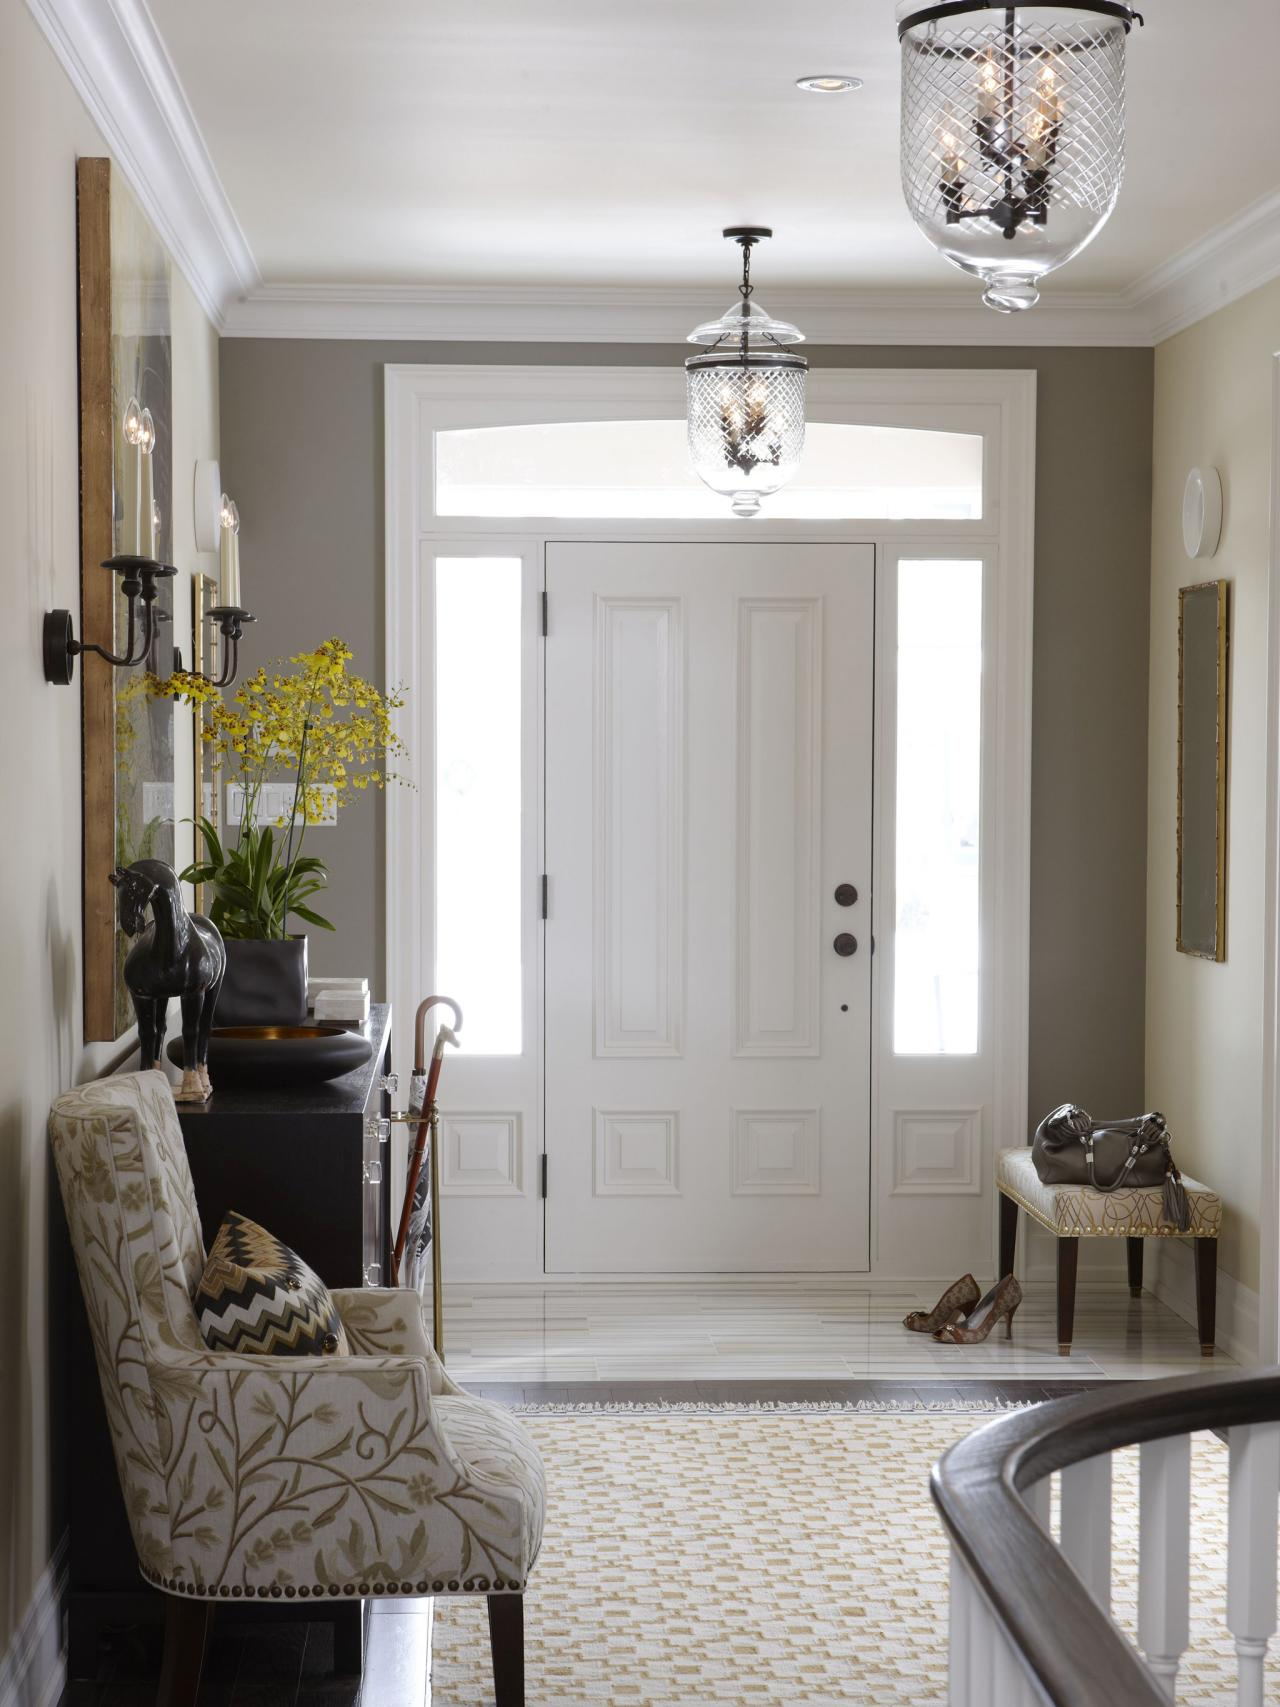 flsra403l_entryway-looking-to-front-door_s3x4-jpg-rend-hgtvcom-1280-1707